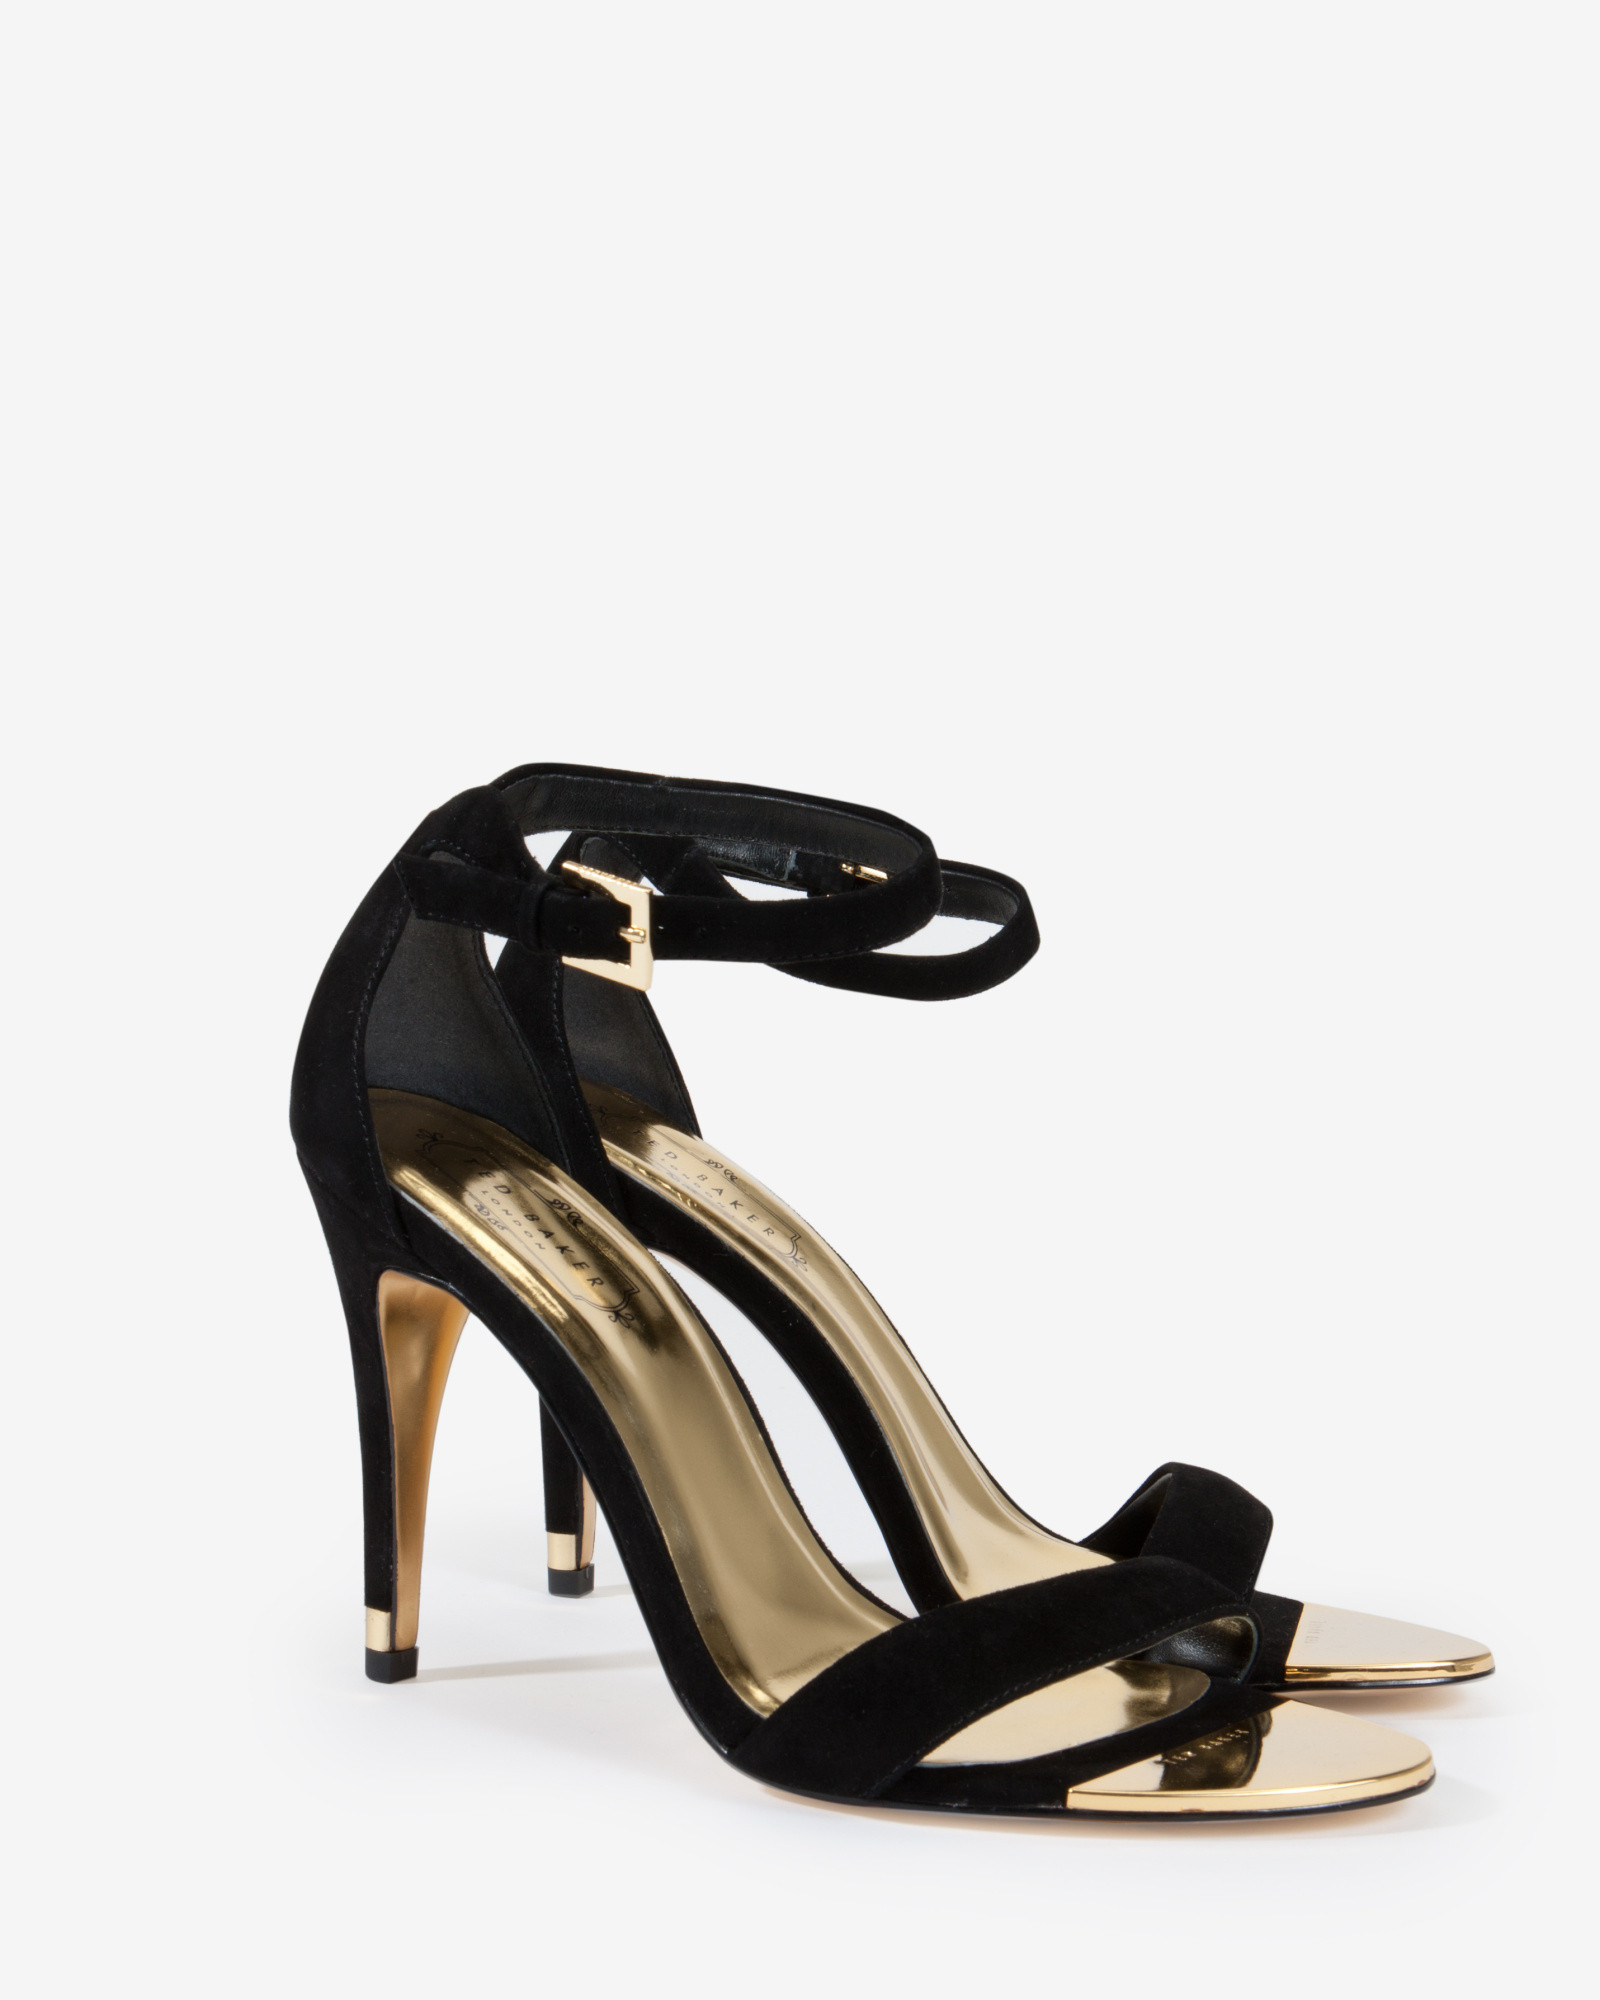 Lyst - Ted Baker Suede Ankle Strap Sandals in Black